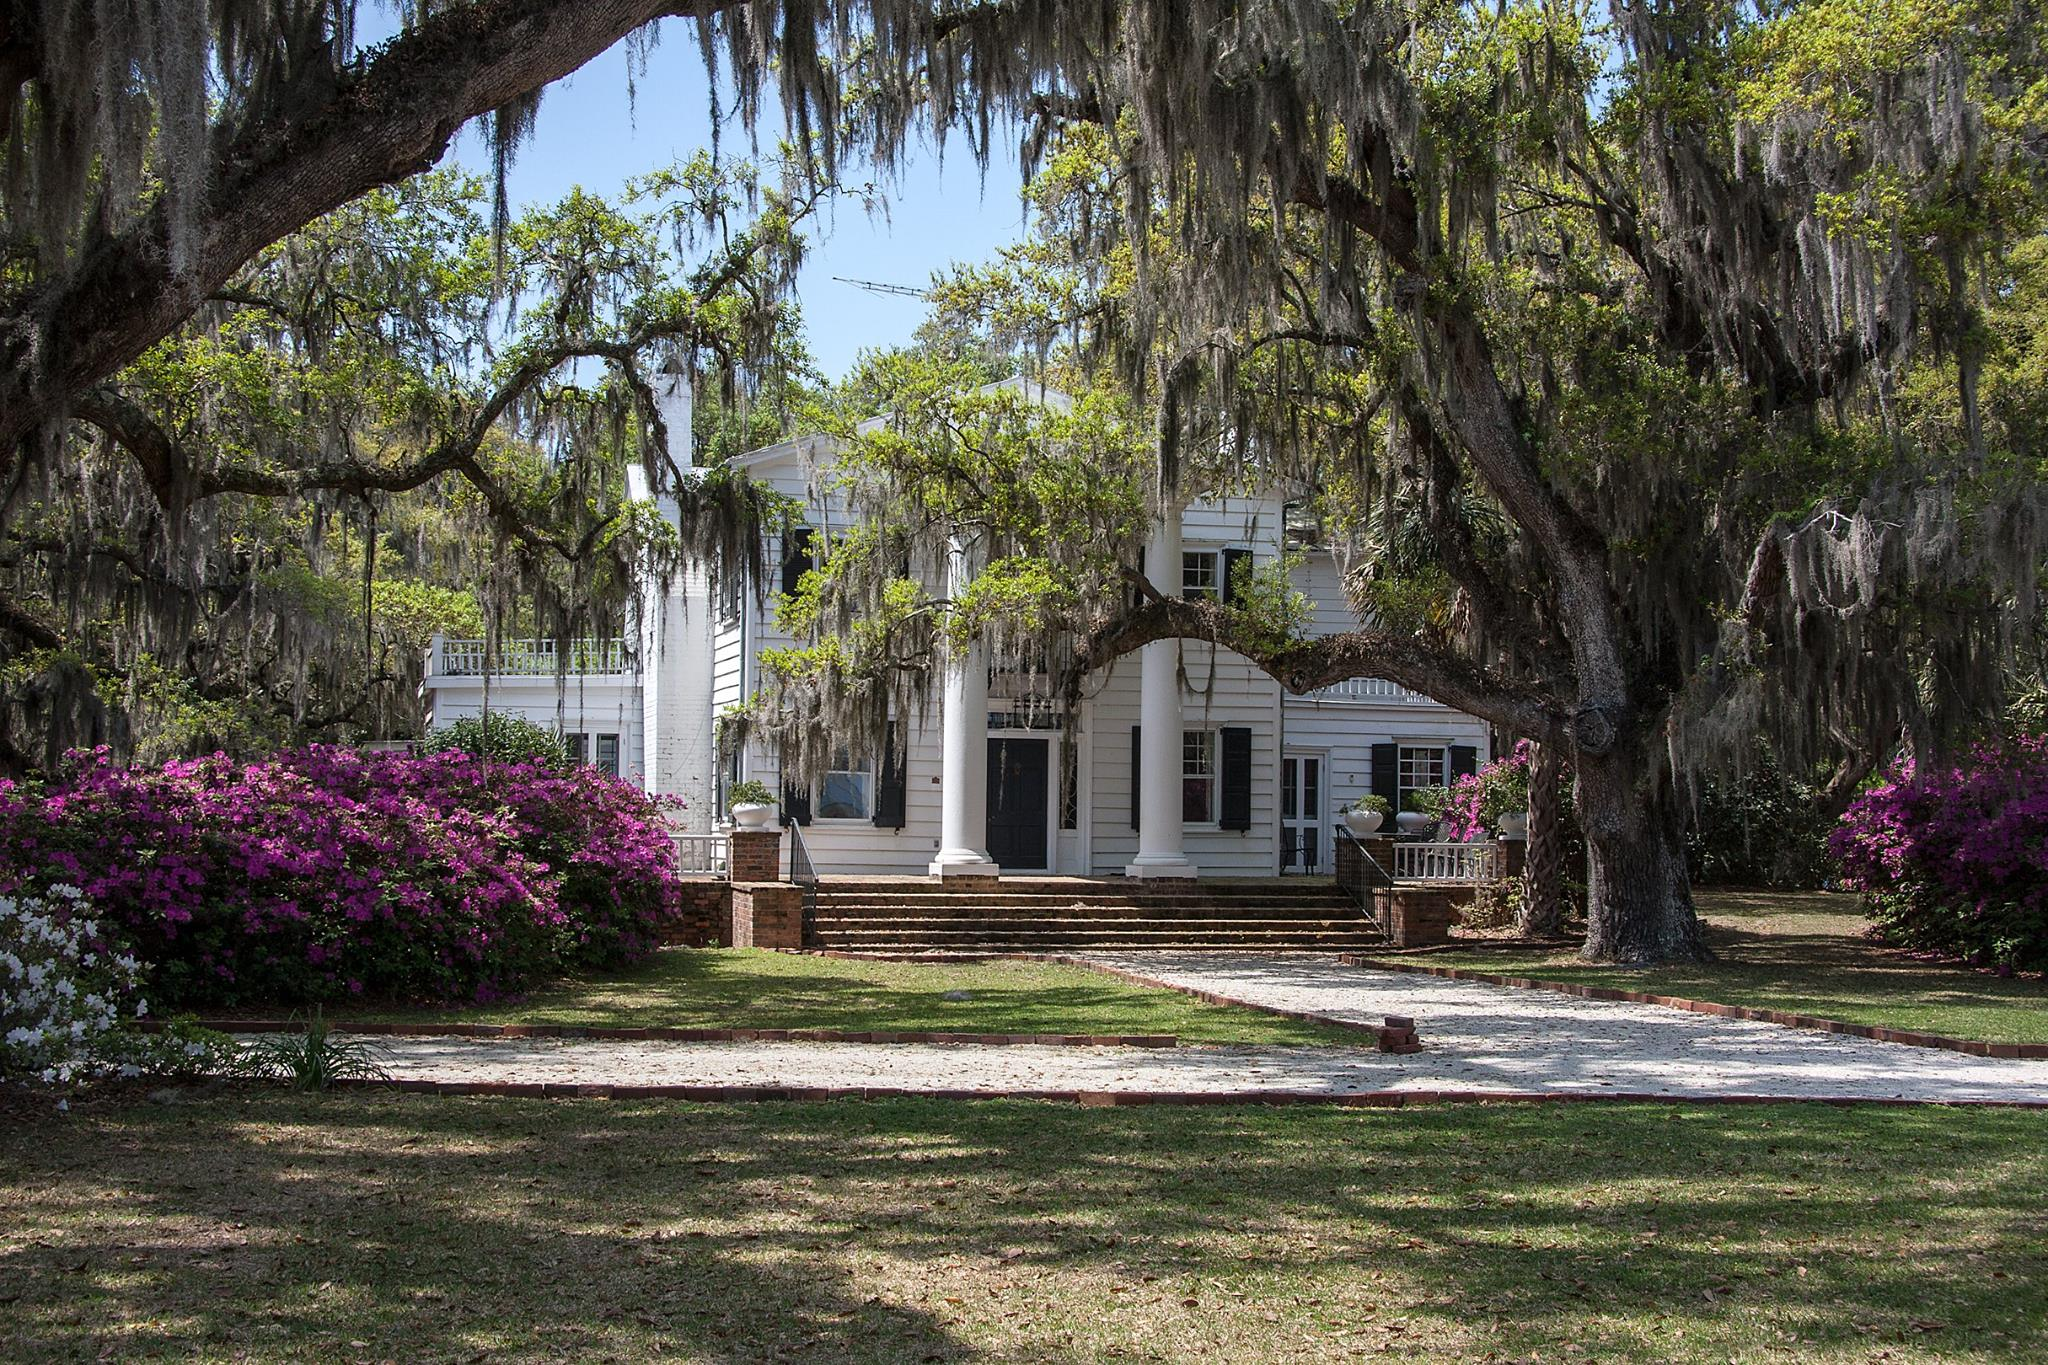 Plantation Tours in the South Carolina Lowcountry